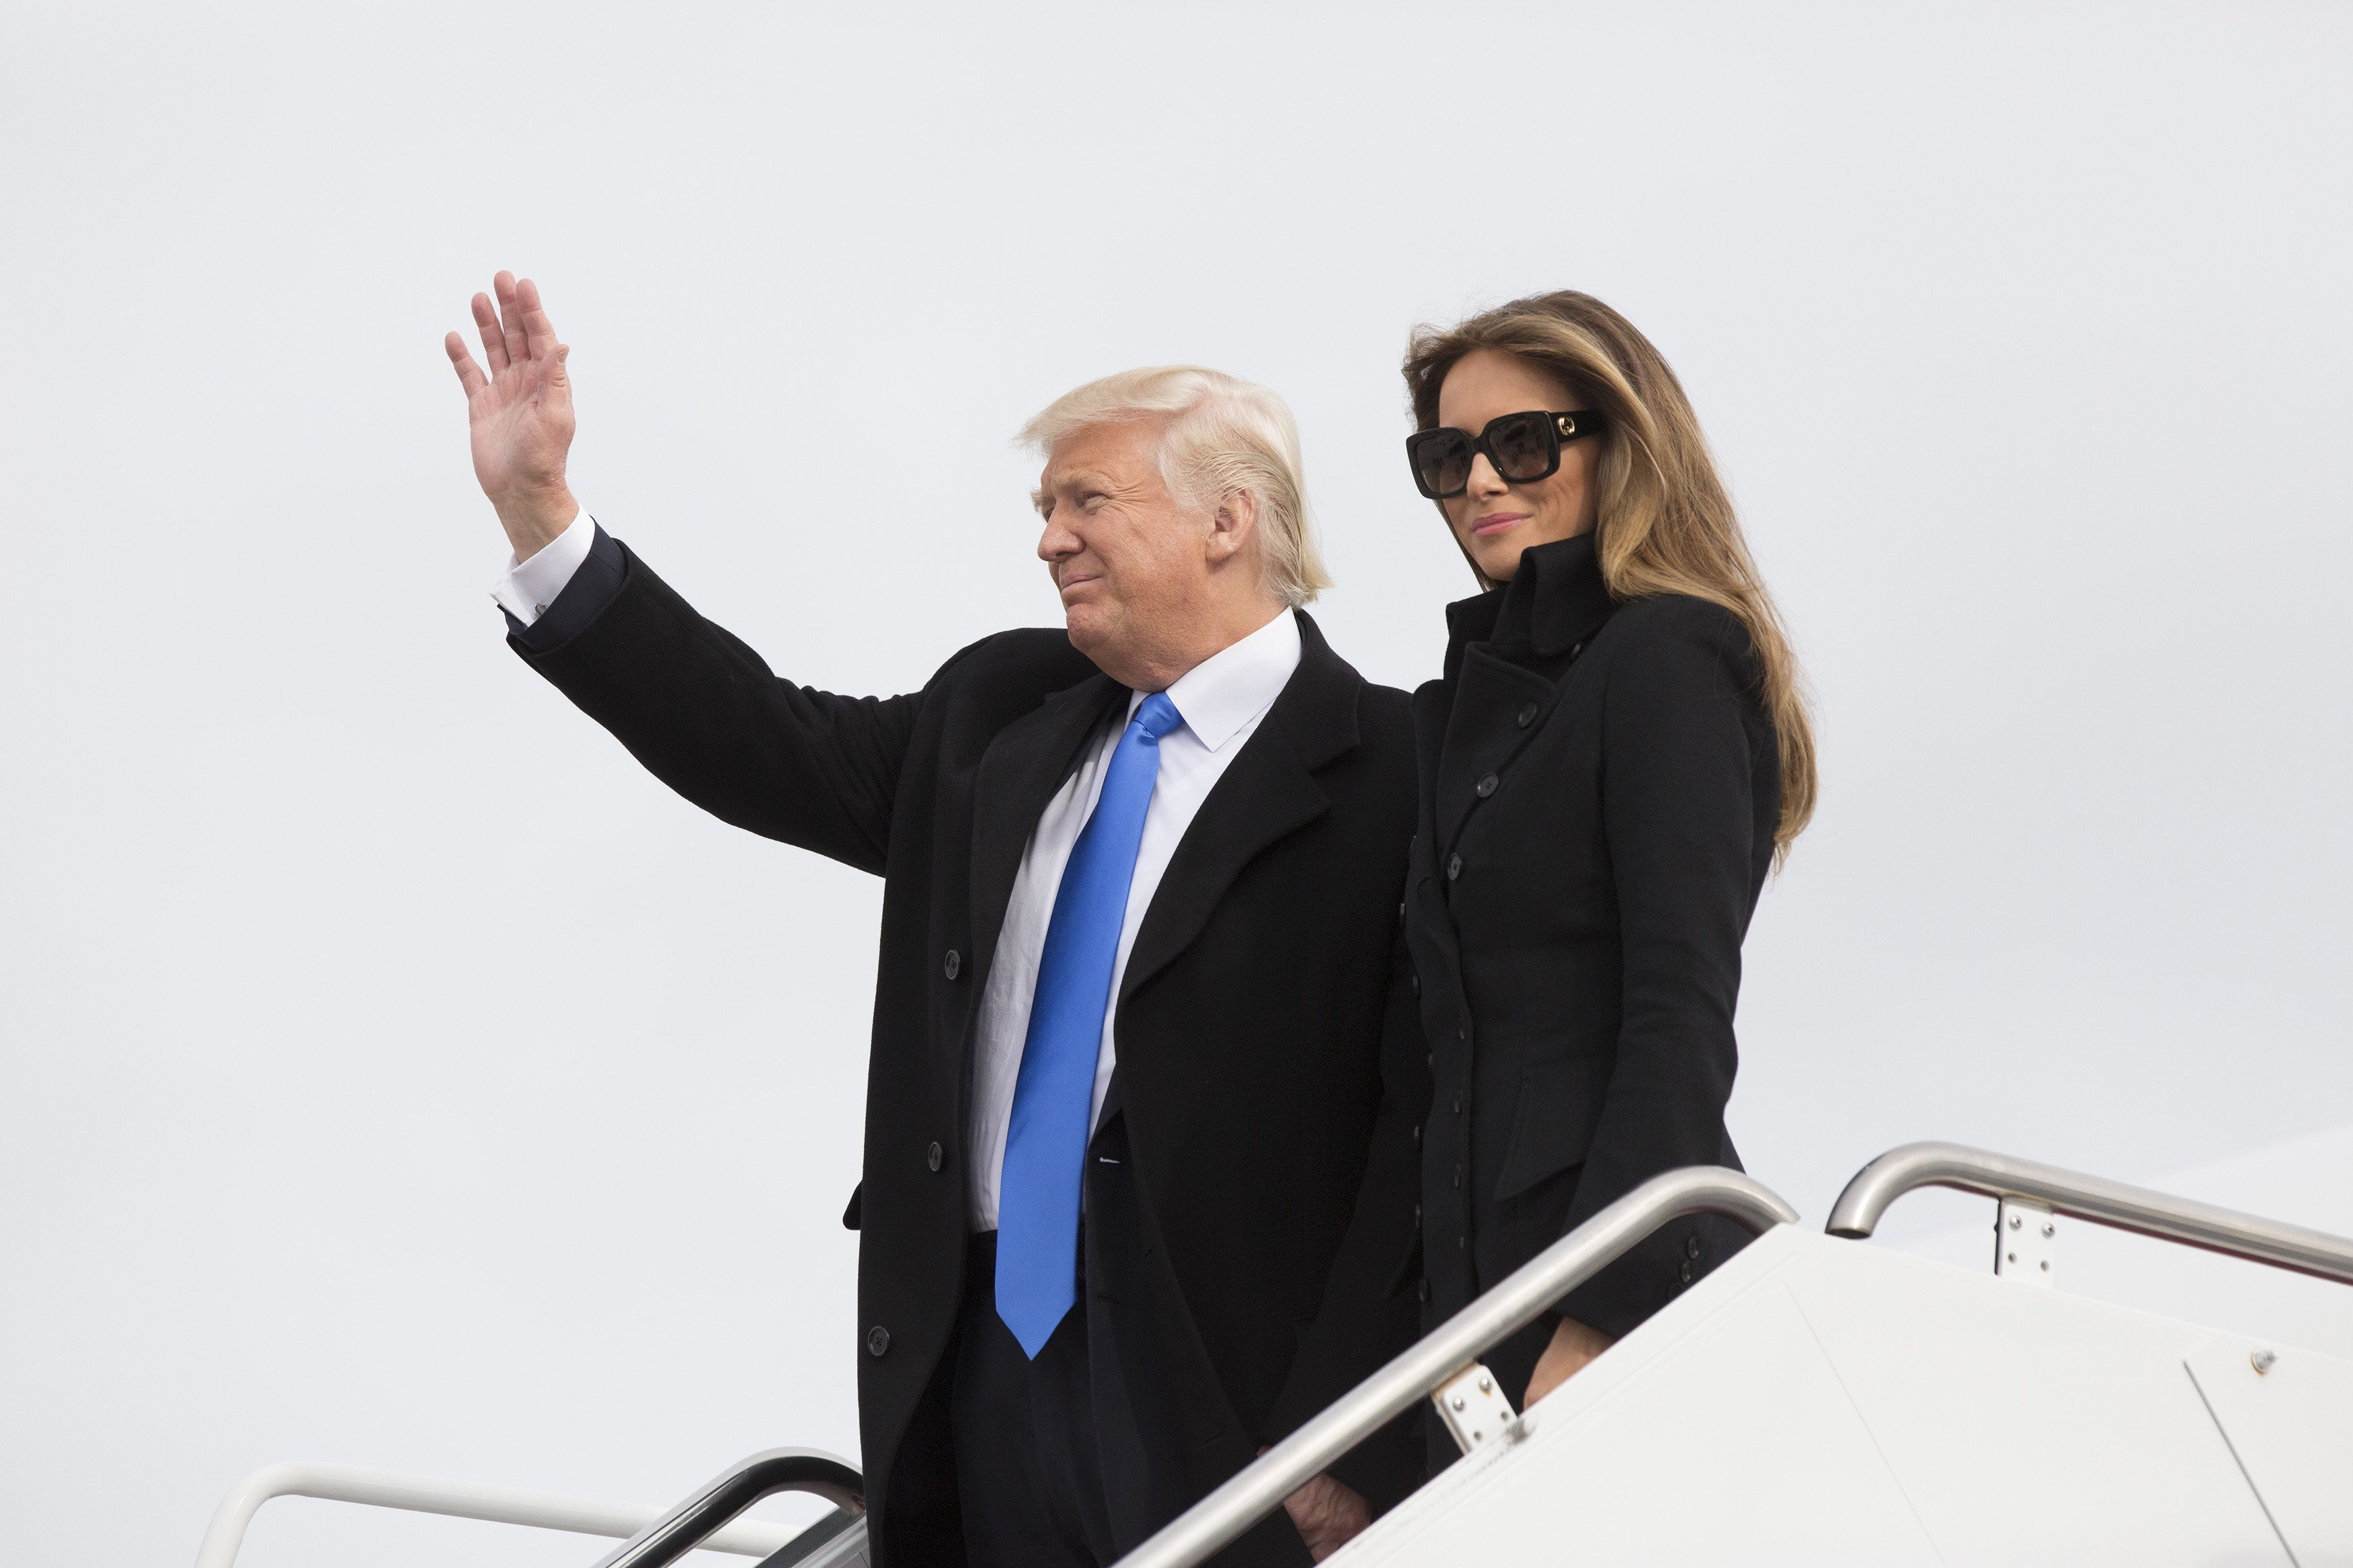 Donald Trump will be sworn in as the 45th President of the United States on Friday.